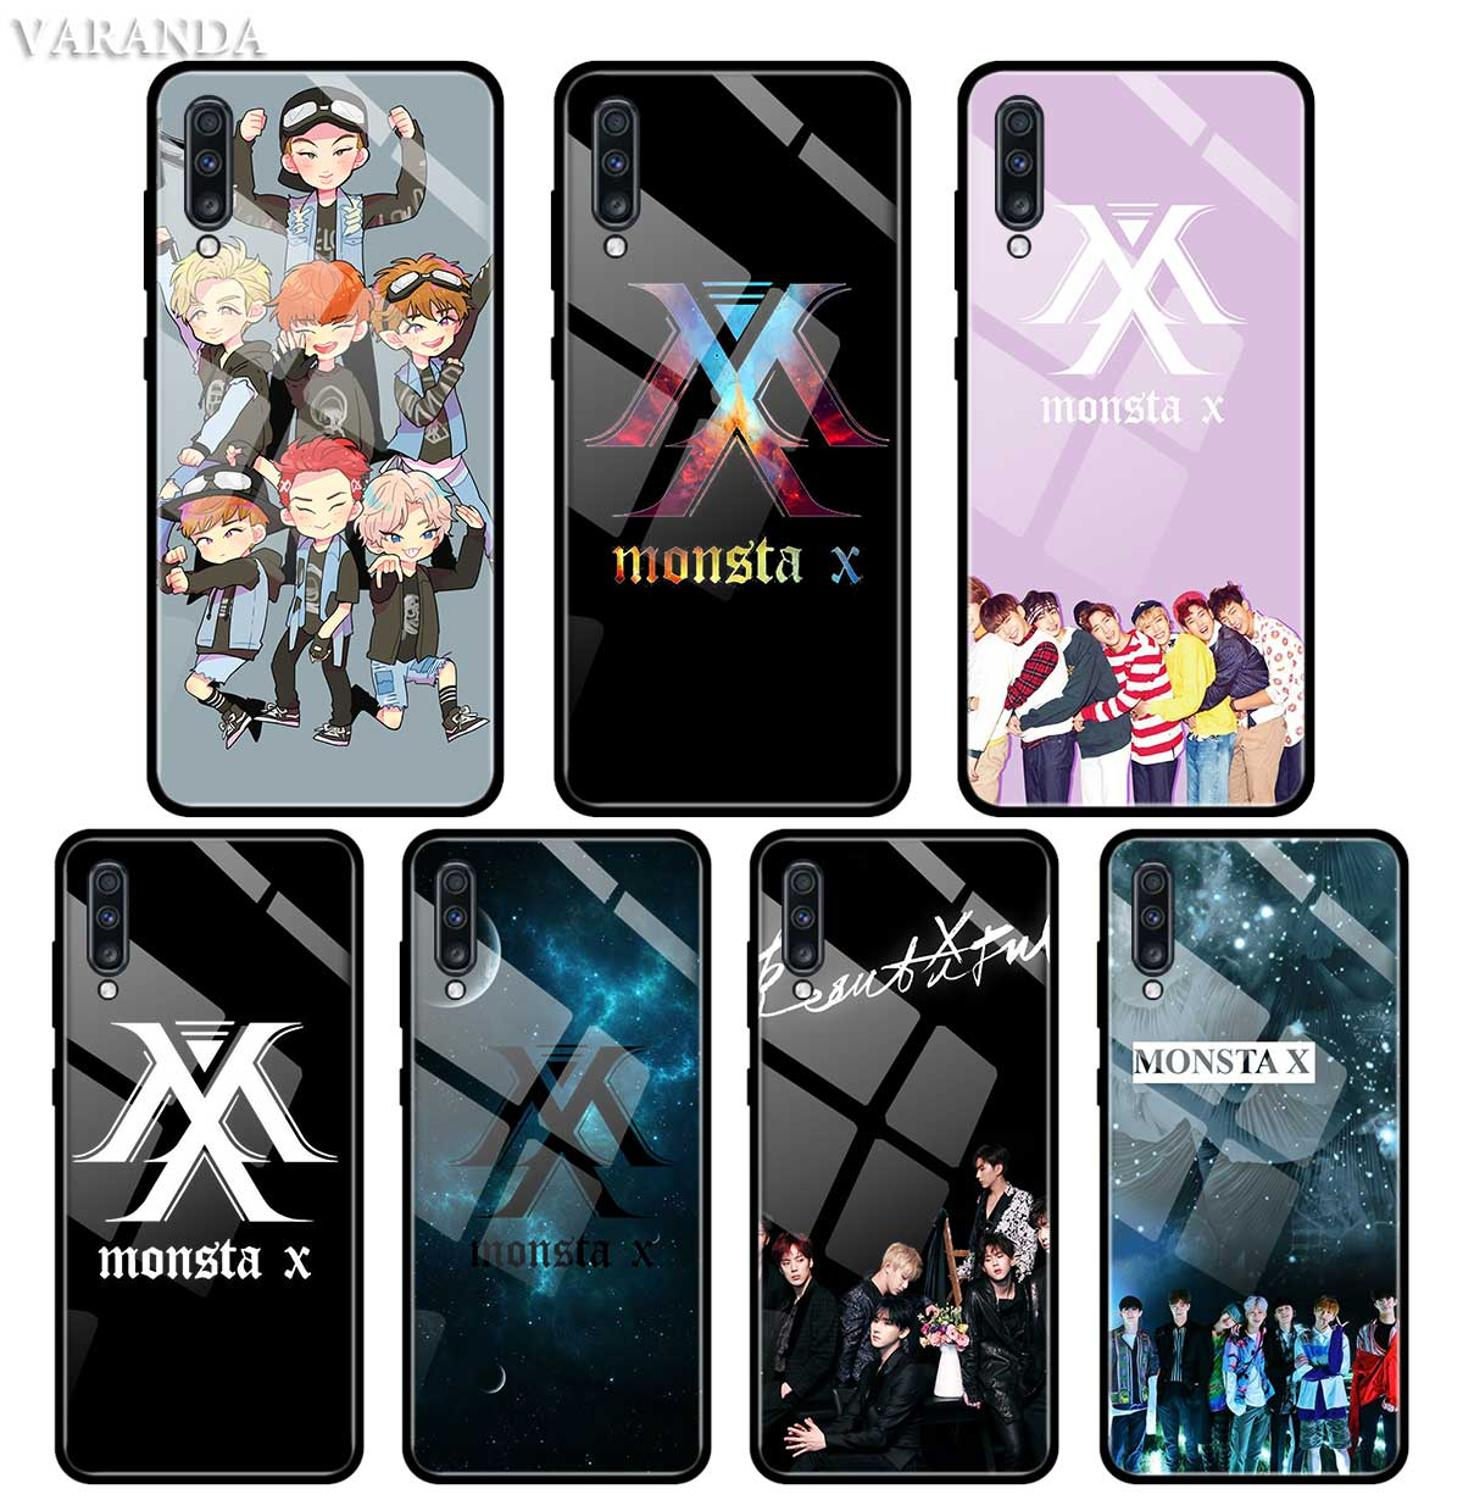 Monsta X <font><b>KPOP</b></font> Boy Group Case For <font><b>Samsung</b></font> A50 A40 A70 A71 A51 A30 A10 A10S A20S M30S J4 <font><b>J6</b></font> <font><b>Plus</b></font> Tempered Glass Phone Cover image